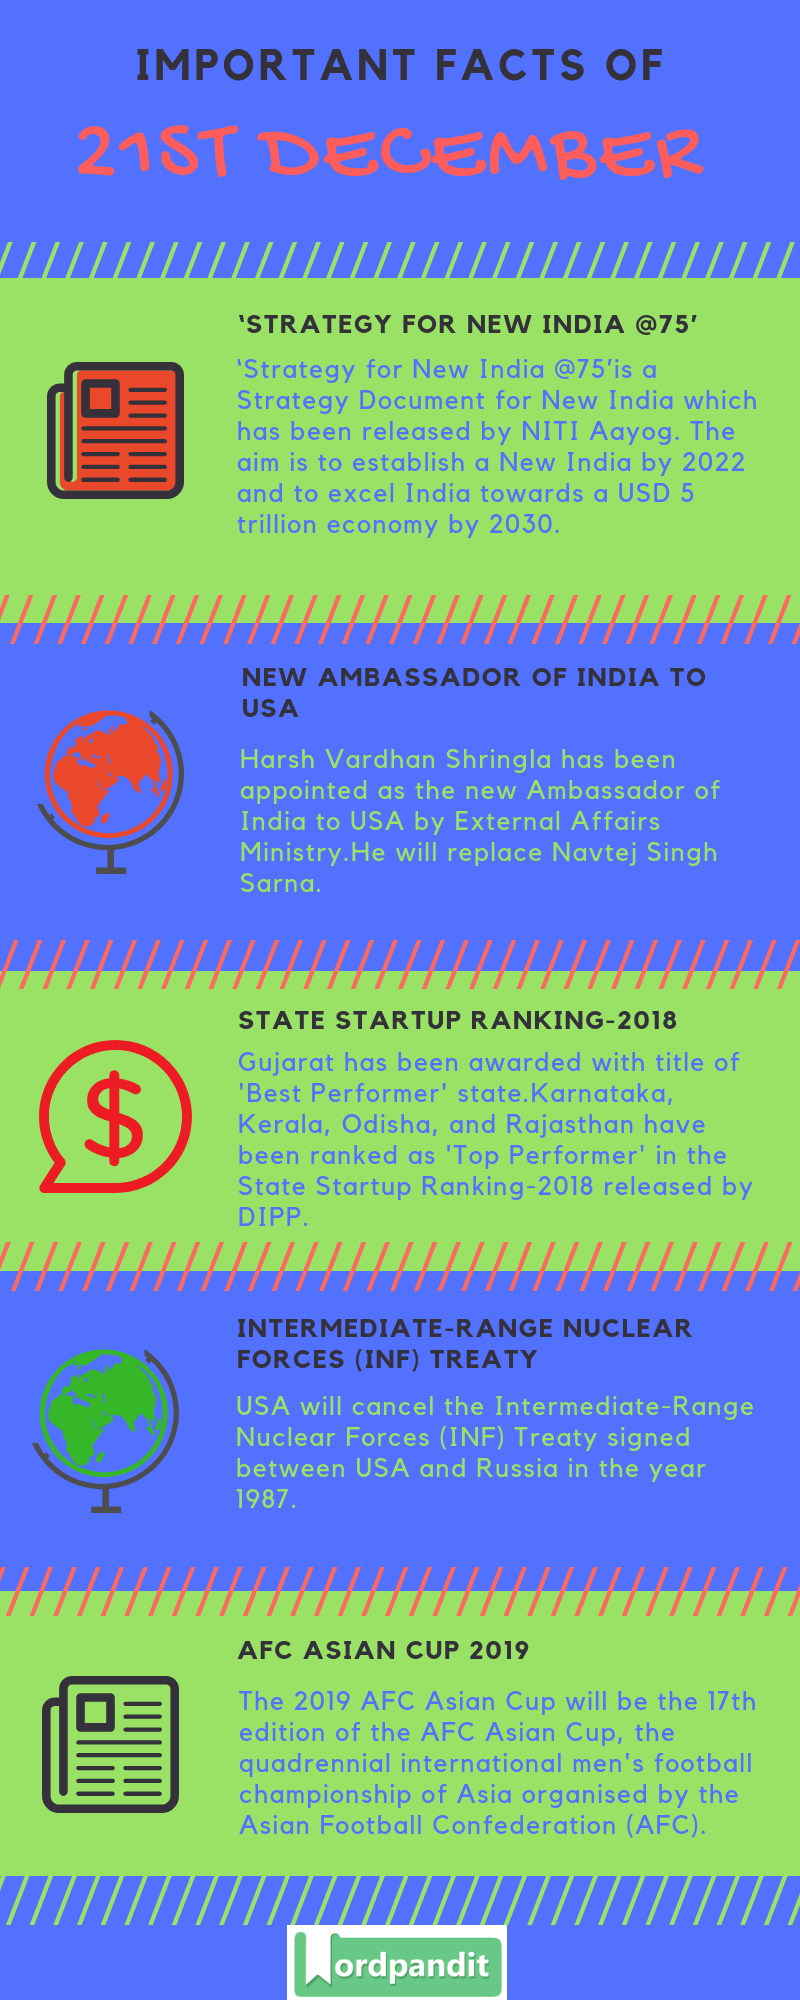 Daily Current Affairs 21 December 2018 Current Affairs Quiz 21 December 2018 Current Affairs Infographic